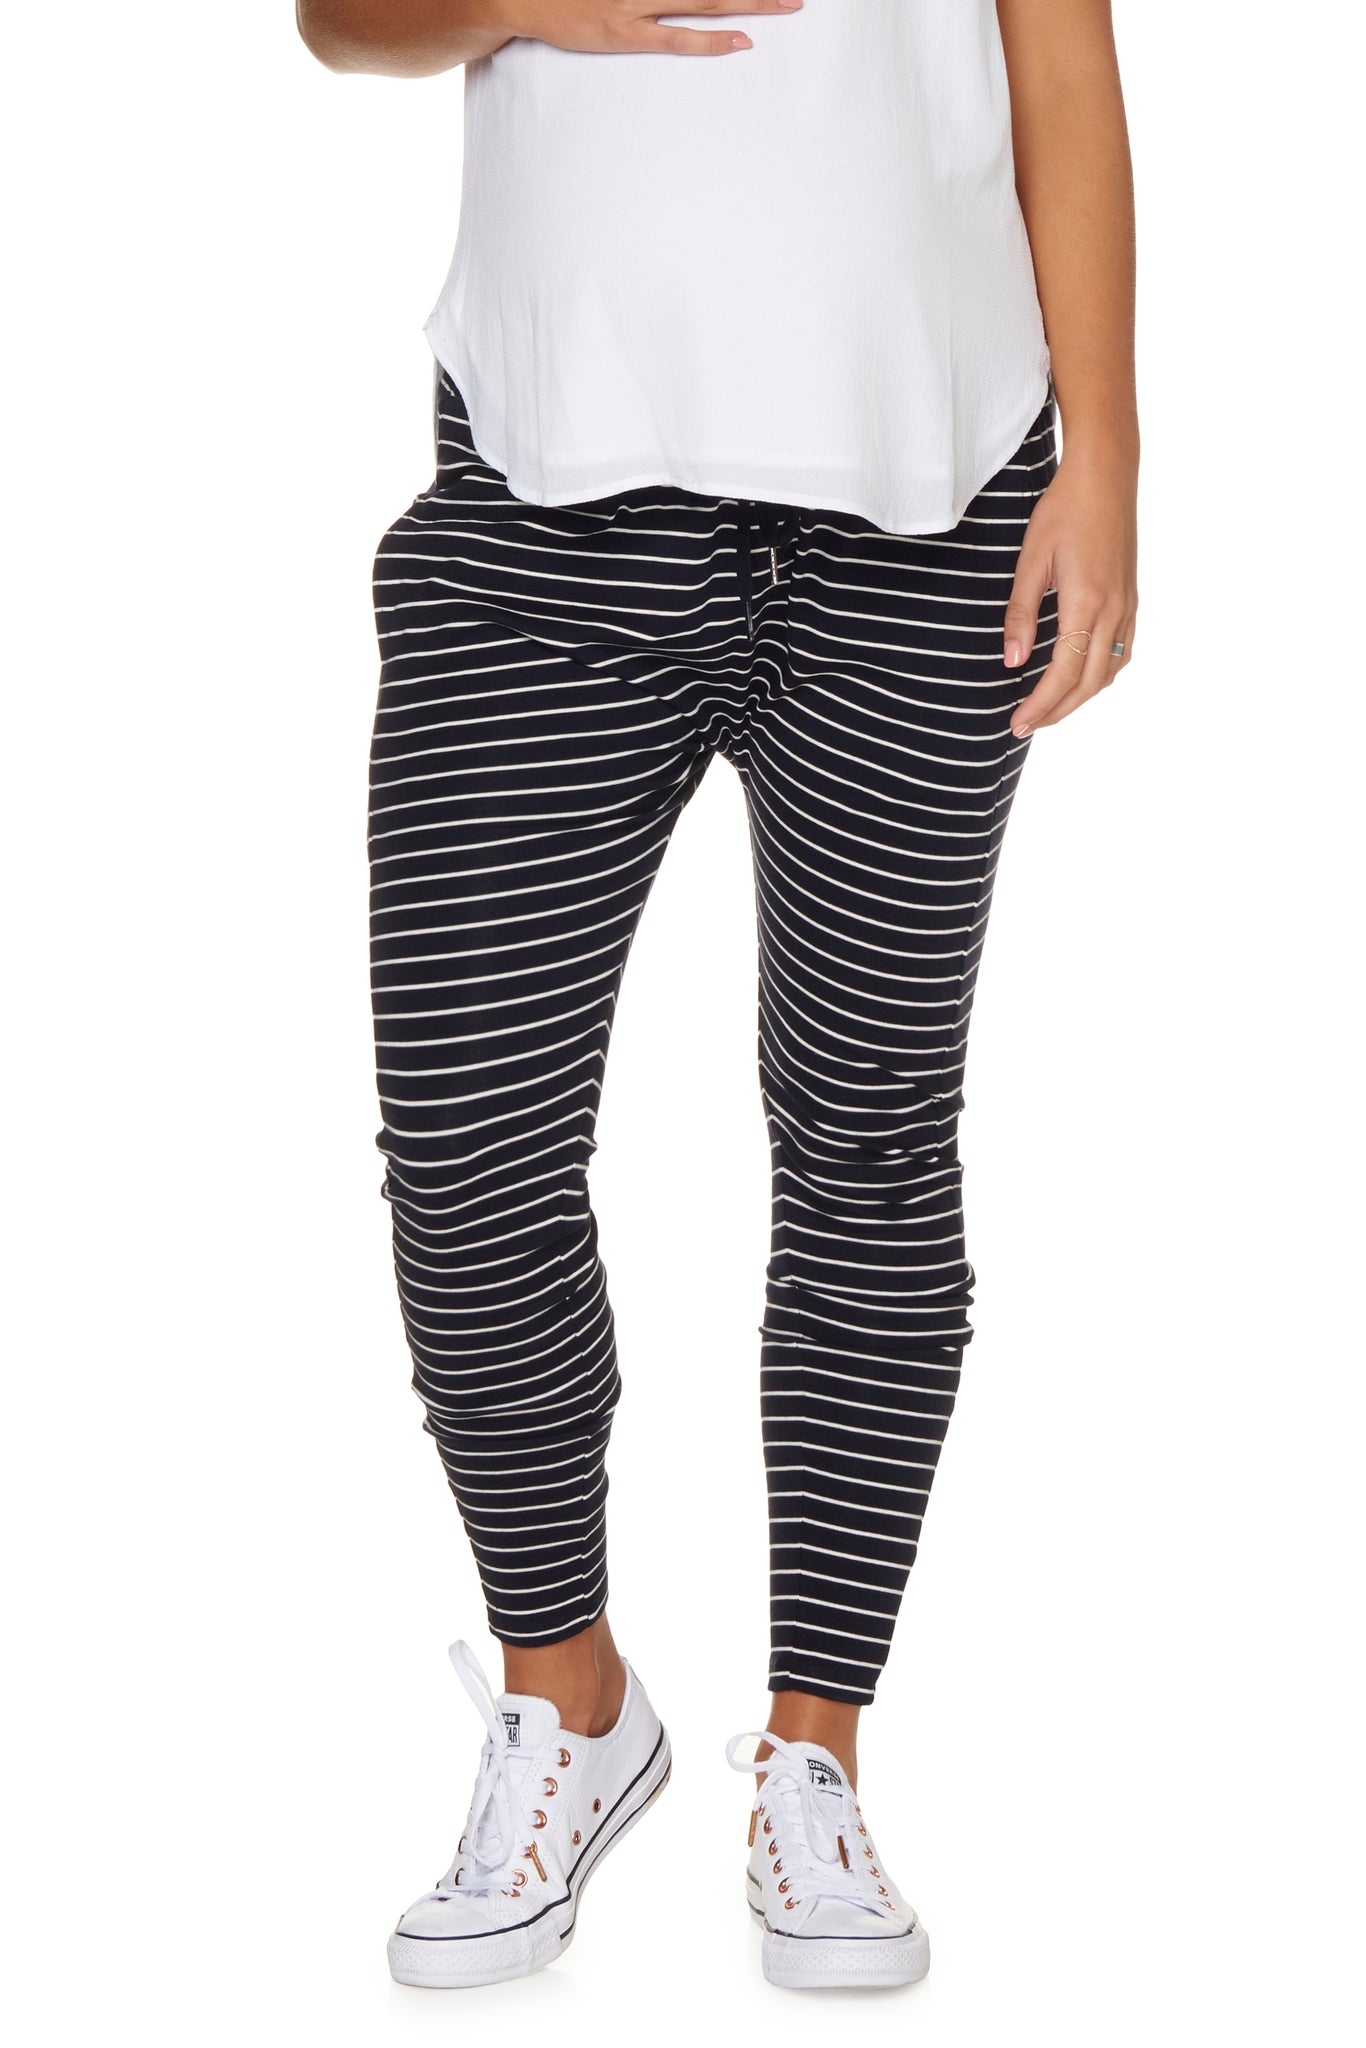 Casual Maternity Pants in Navy & White Stripe 1